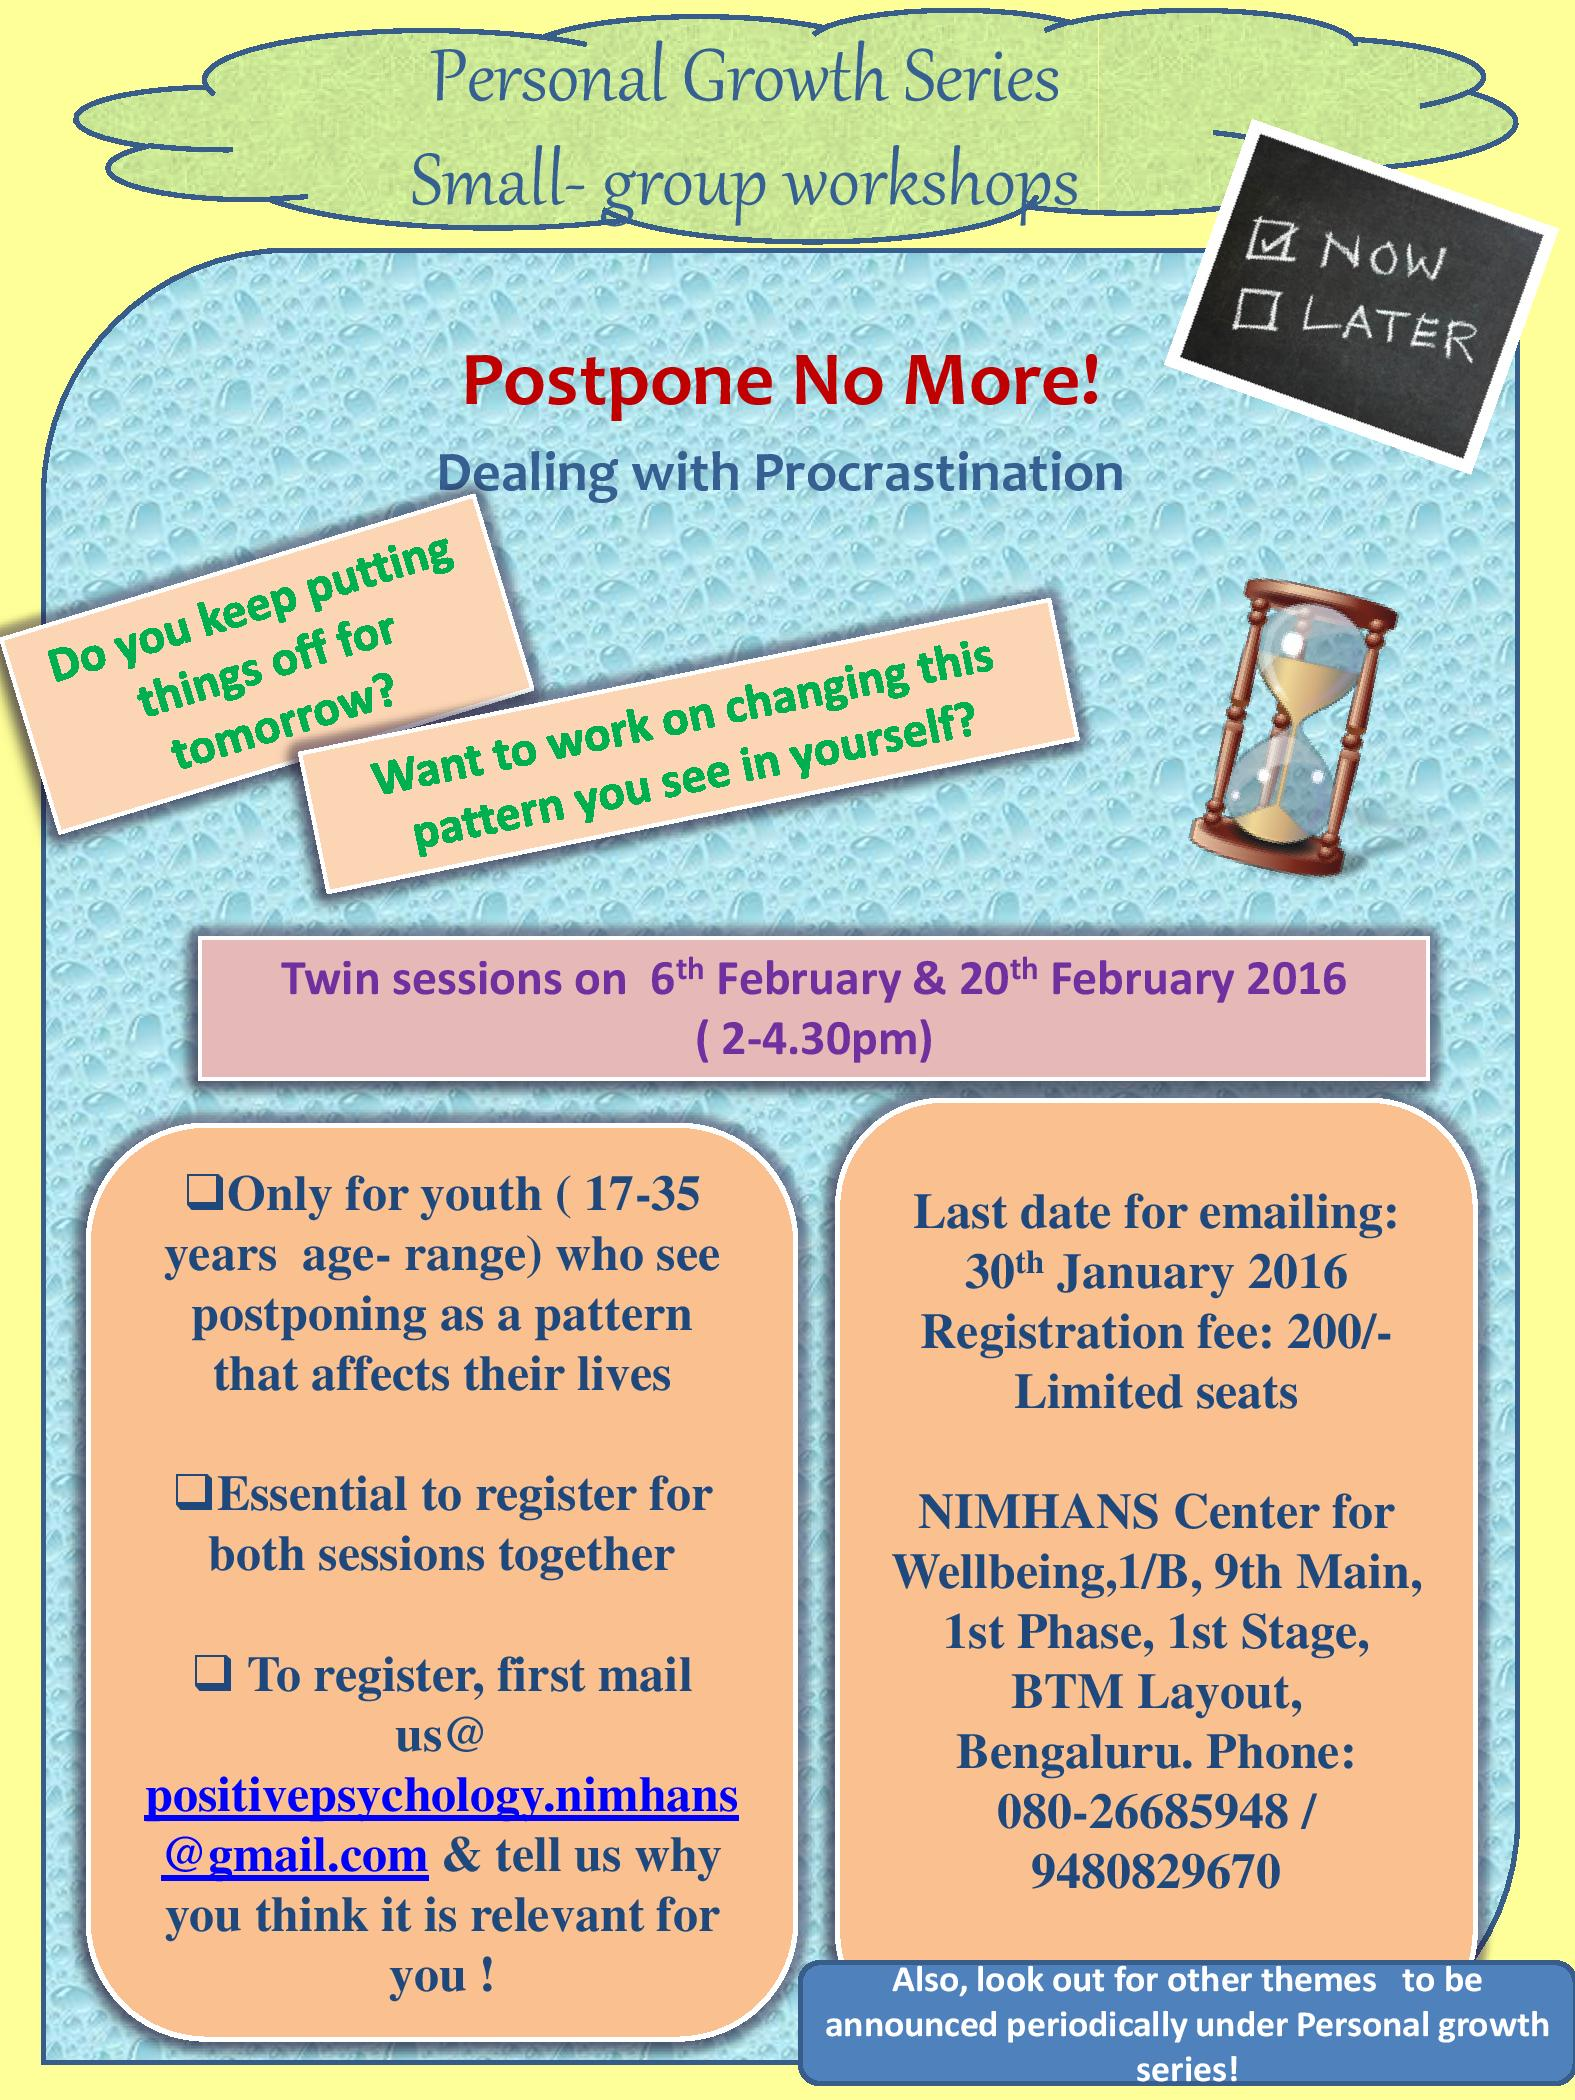 Personal Growth Series Poster - Postpone No more-page-001